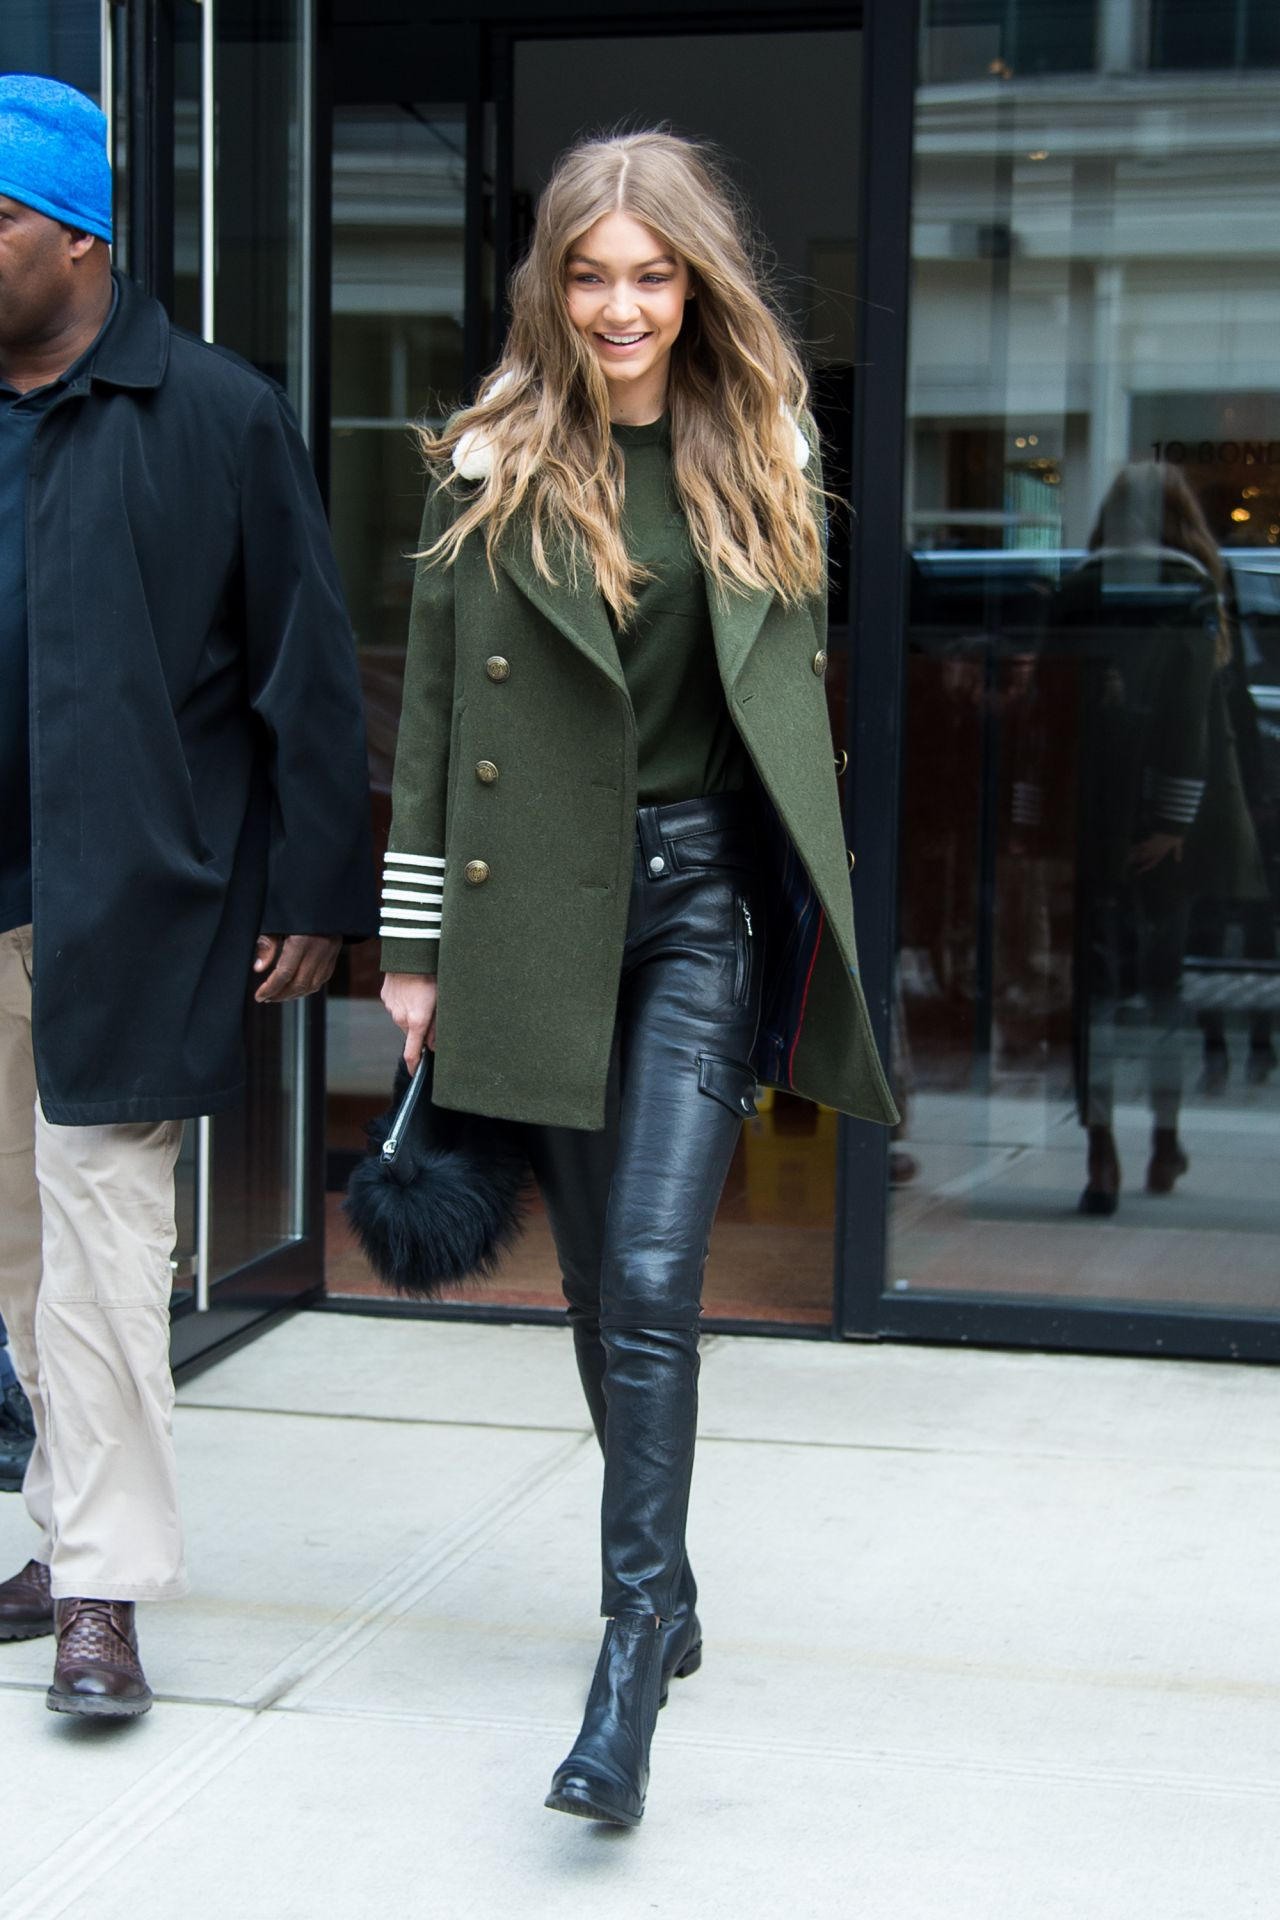 Gigi Hadid Urban Outfit Leaving Her Apartment In New